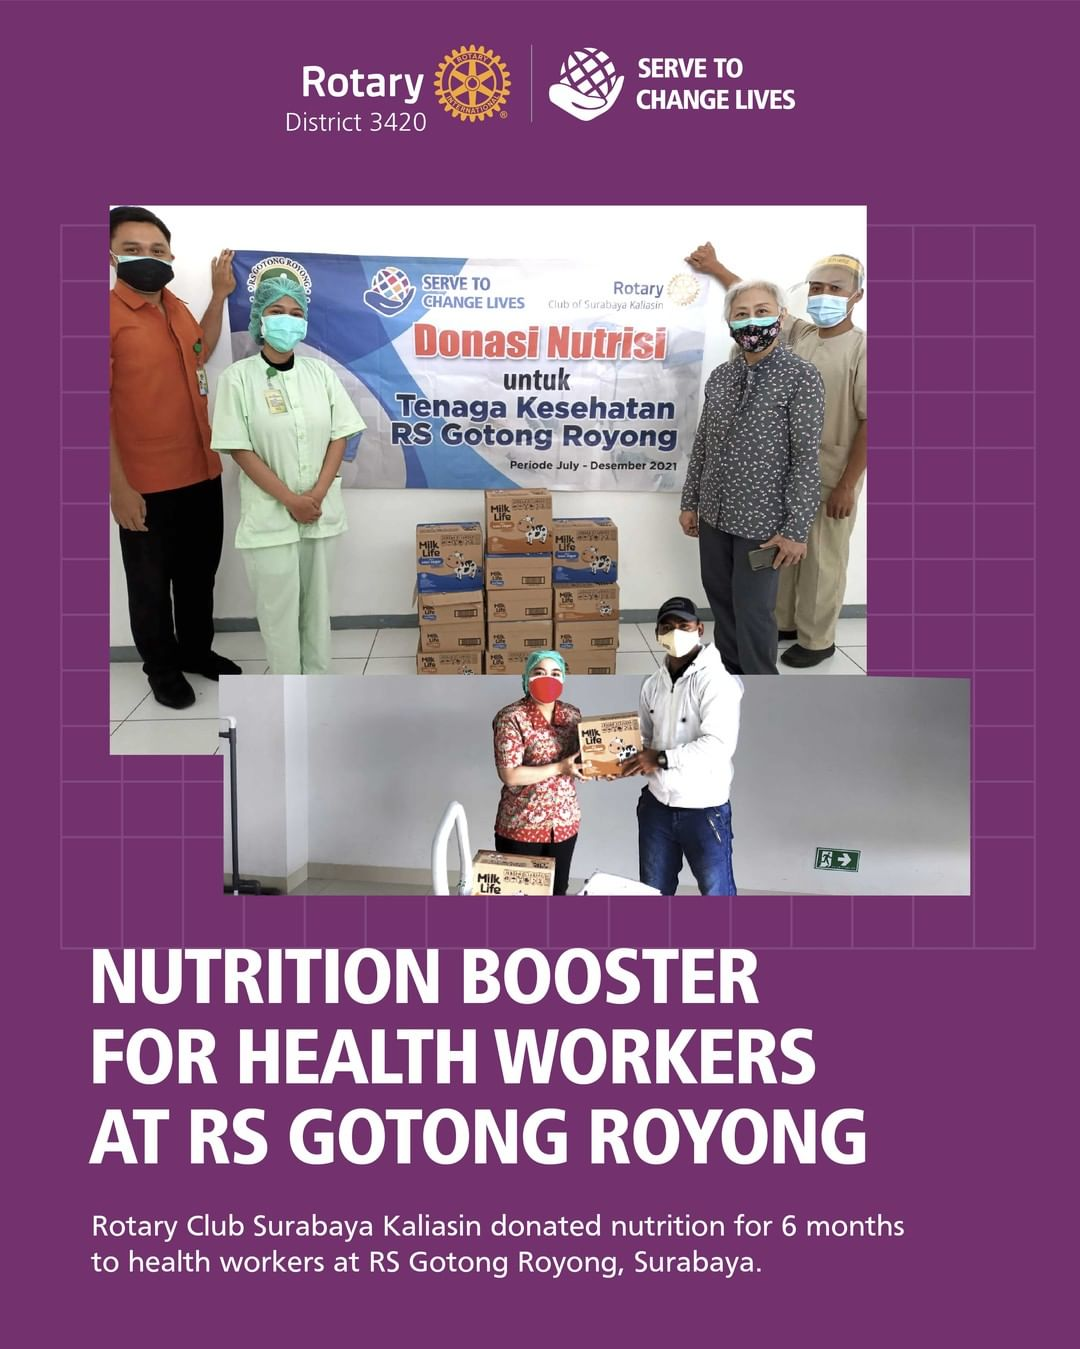 Nutrition Booster for Health Workers at RS Gotong Royong